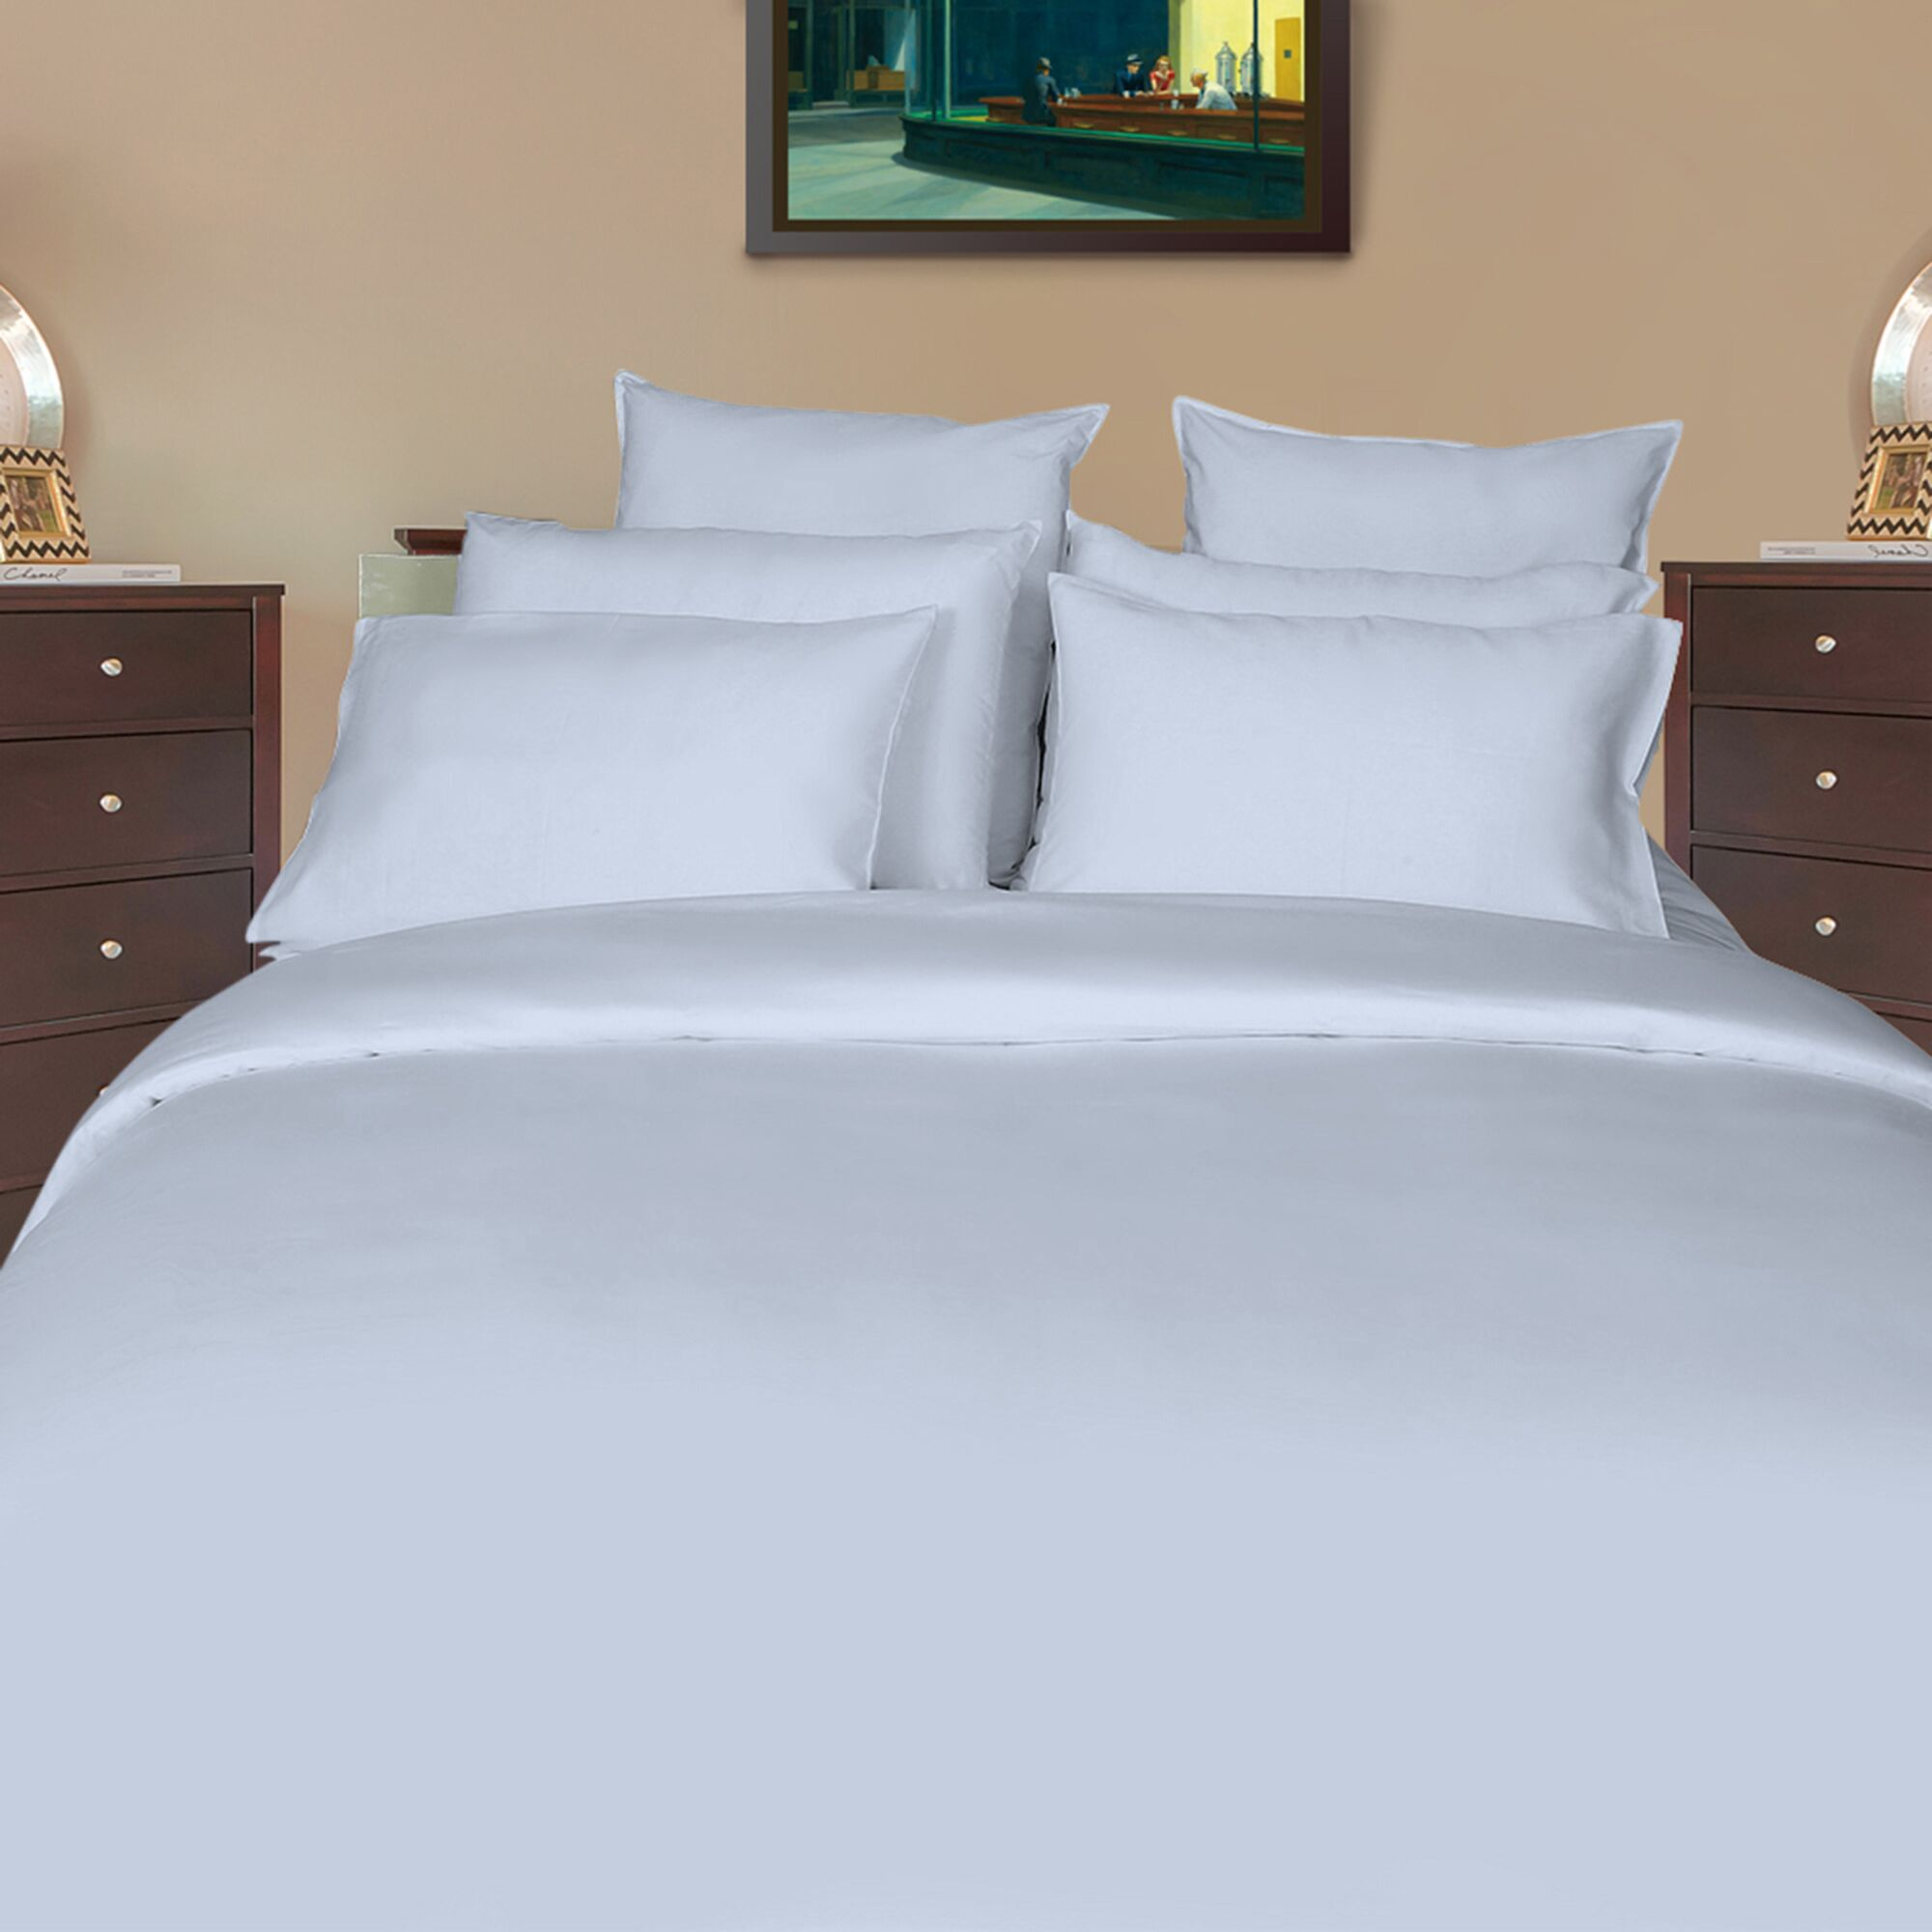 Huskins Sateen Solid 600 Thread Count 100% Cotton Sheet Set Size: King L, Color: Arctic Ice